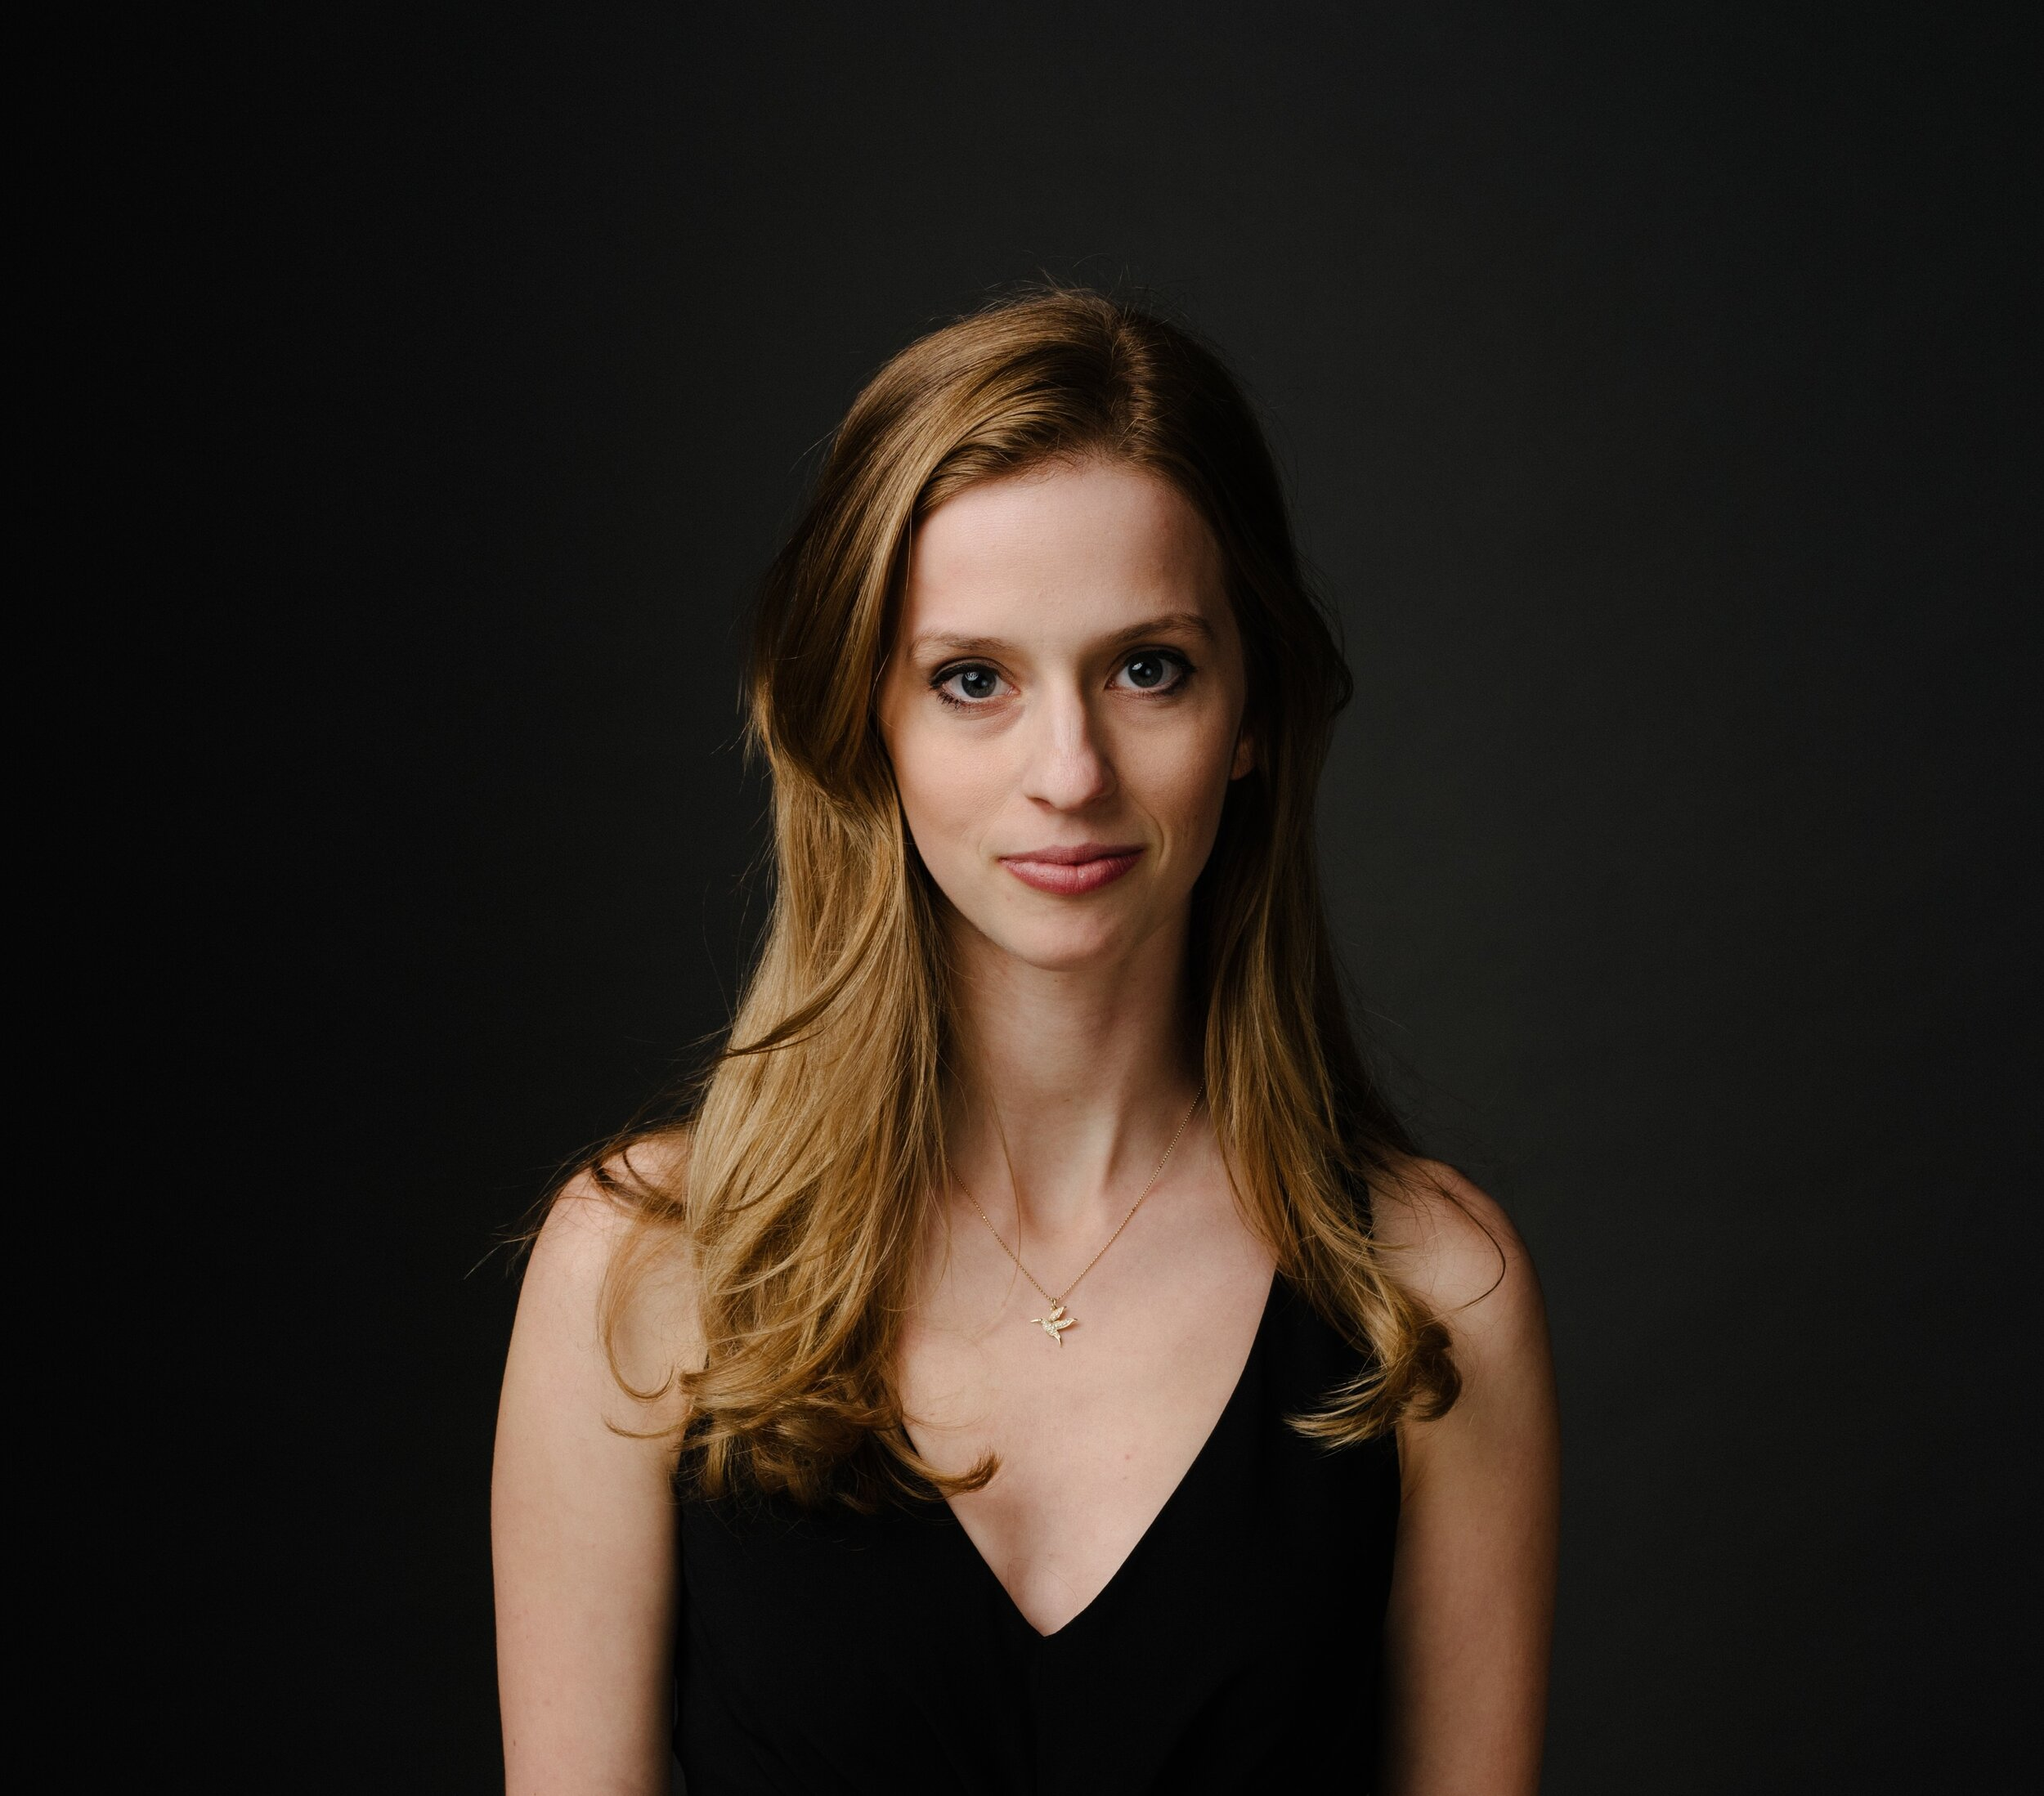 CRITICALLY ACCLAIMED  ELIZABETH DORMAN  JOINS BALLET FANTASTIQUE'S MUSICAL ENSEMBLE AS GUEST PIANIST FOR BALLET FANTASTIQUE'S WORLD PREMIERE OF   NEVERMORE: STORIES OF EDGAR ALLAN POE   (PERFORMANCES OCT. 25-27, 2019 AT THE HULT CENTER FOR THE PERFORMING ARTS).